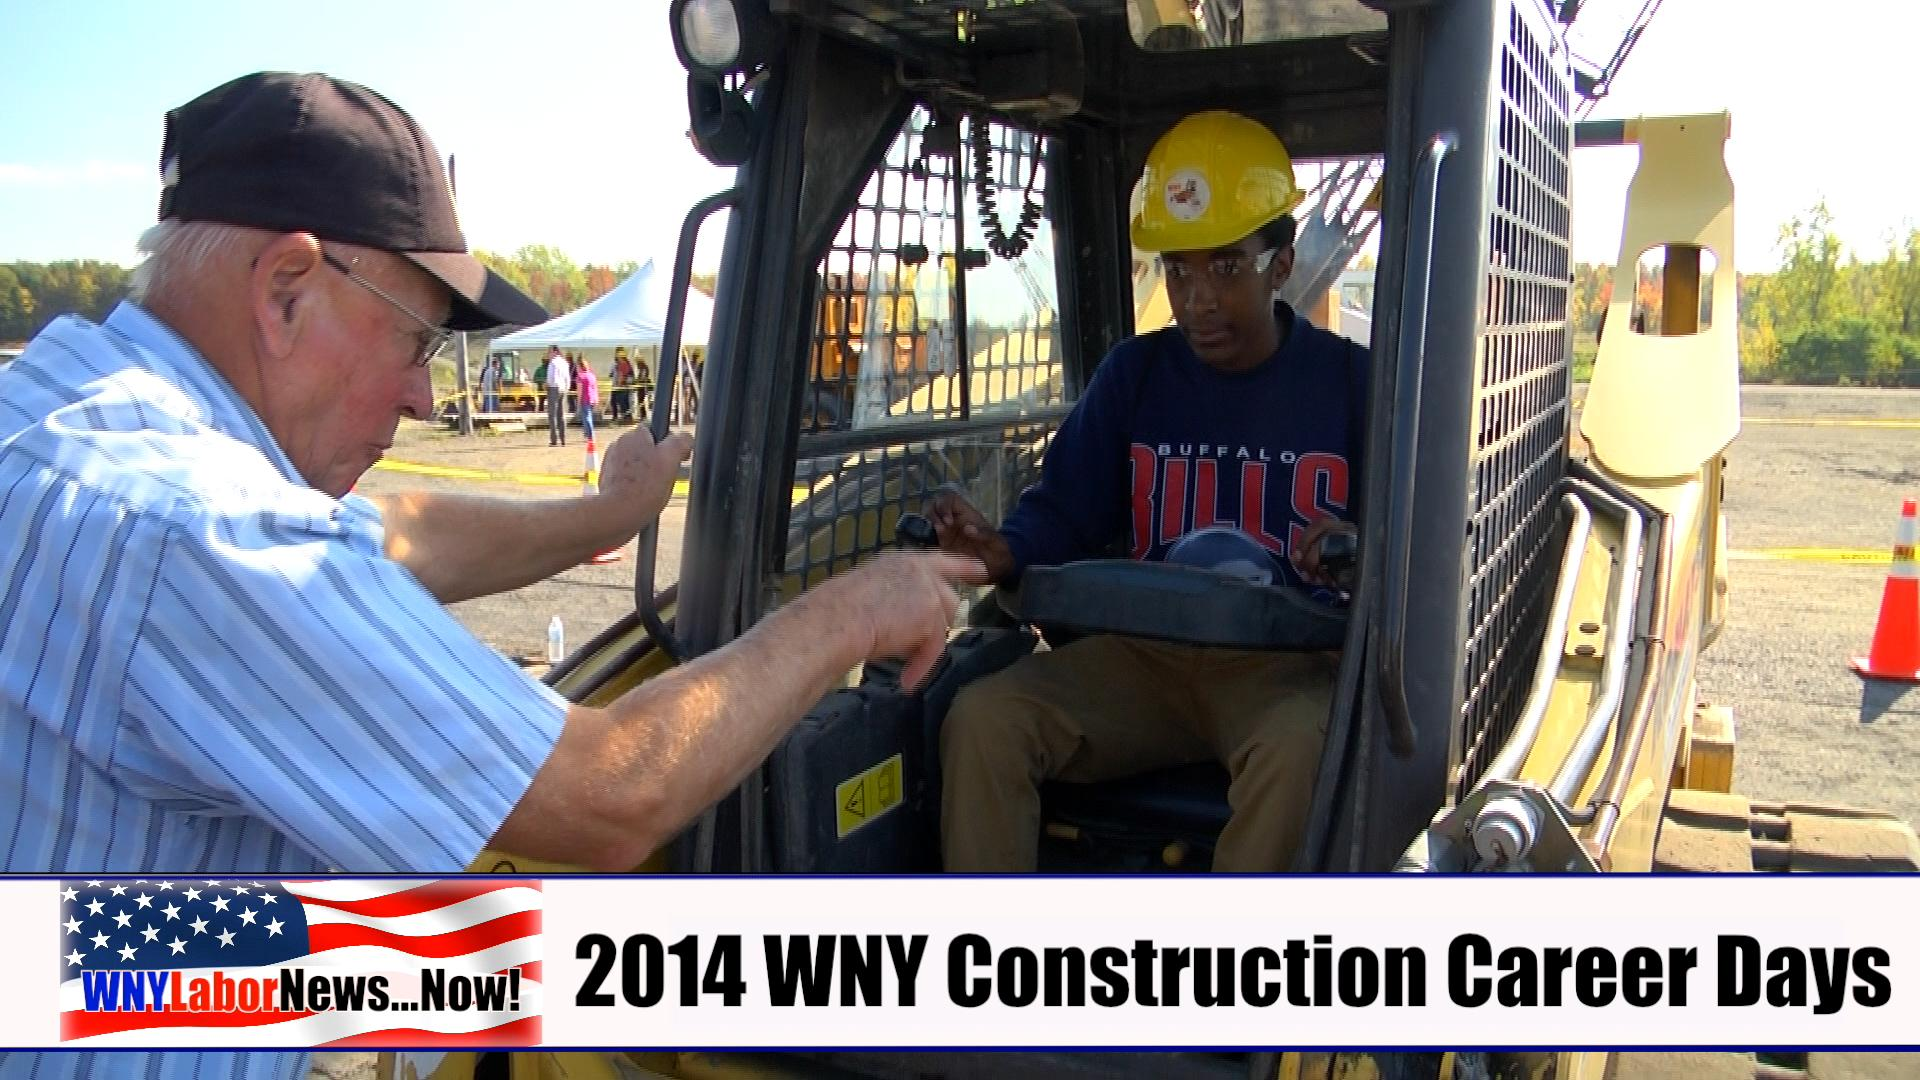 Western New York Labor News… NOW! - 2014 WNY Construction Career Days